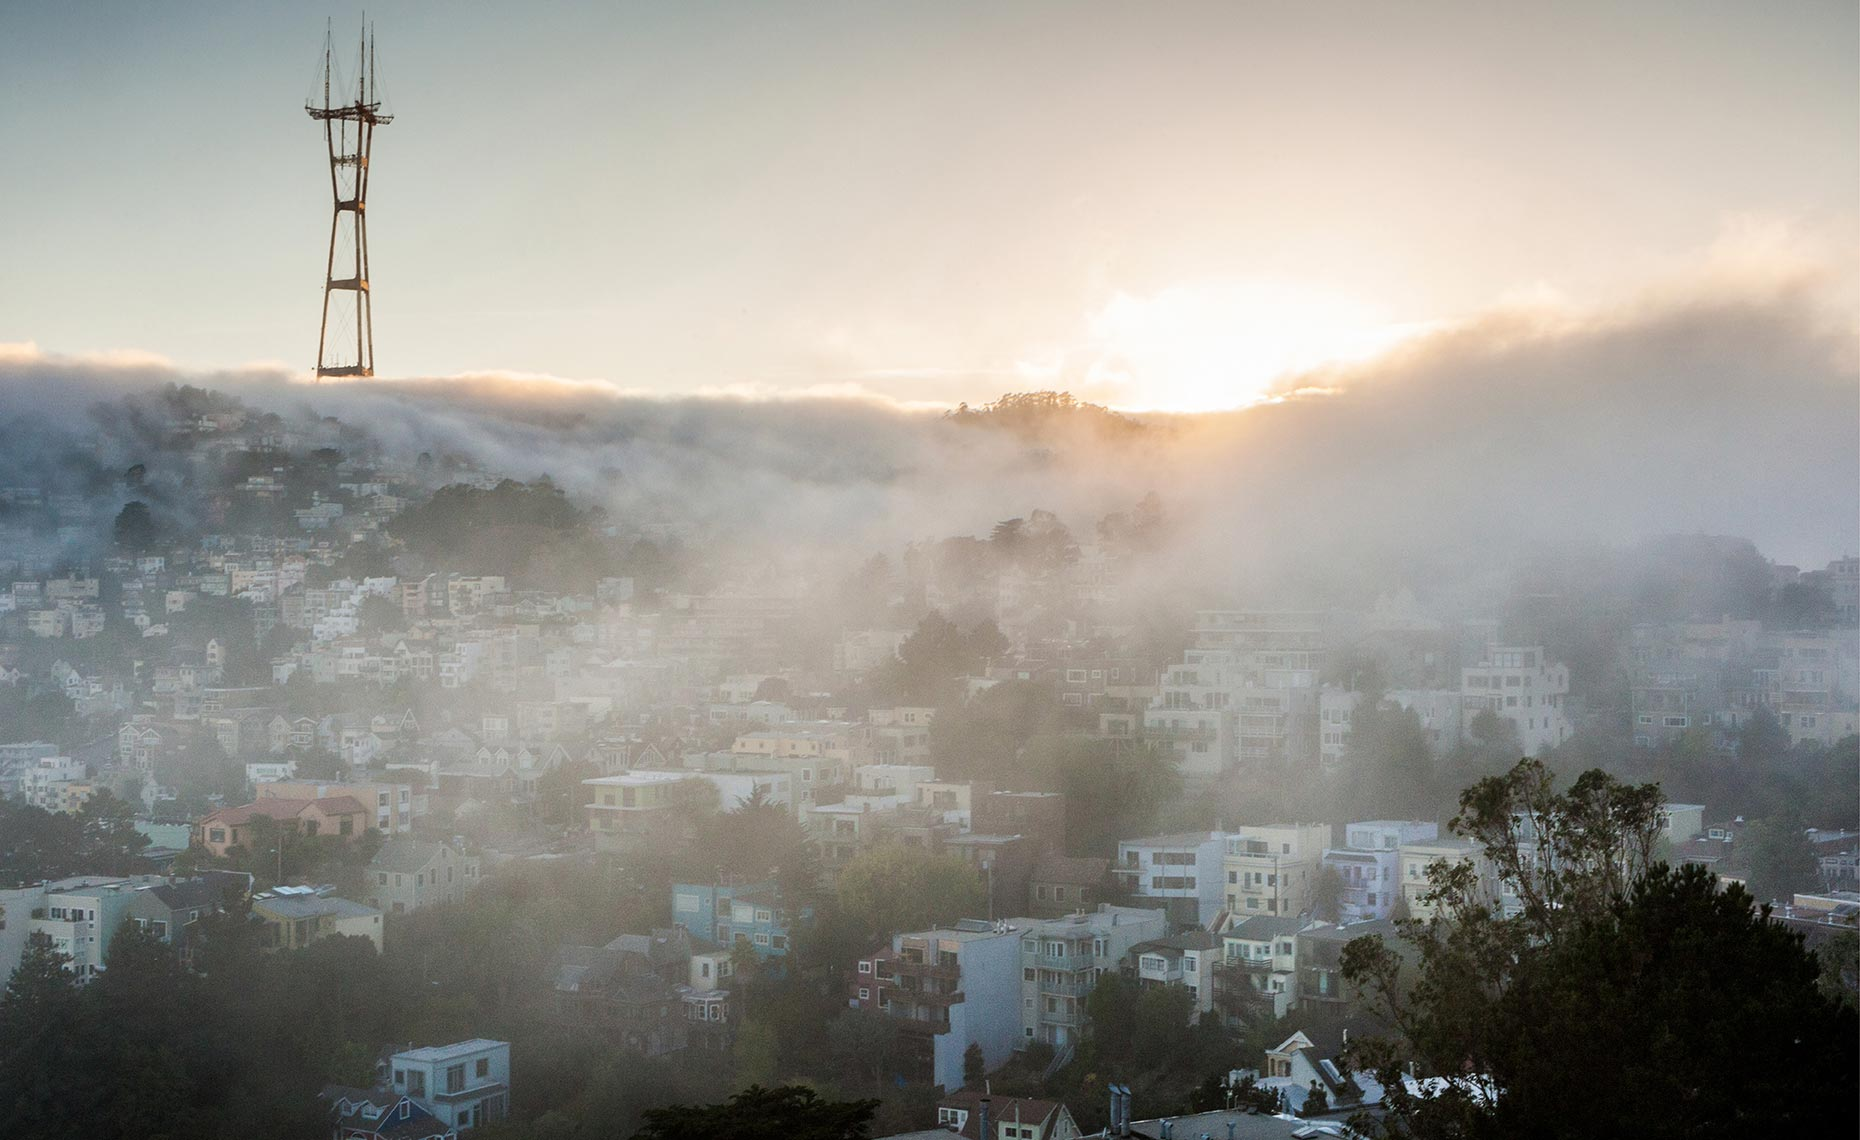 21_San_Franciso_Radio_Tower_Fog_California_Environment_Landscape_Chris_Wellhausen_Photography.JPG